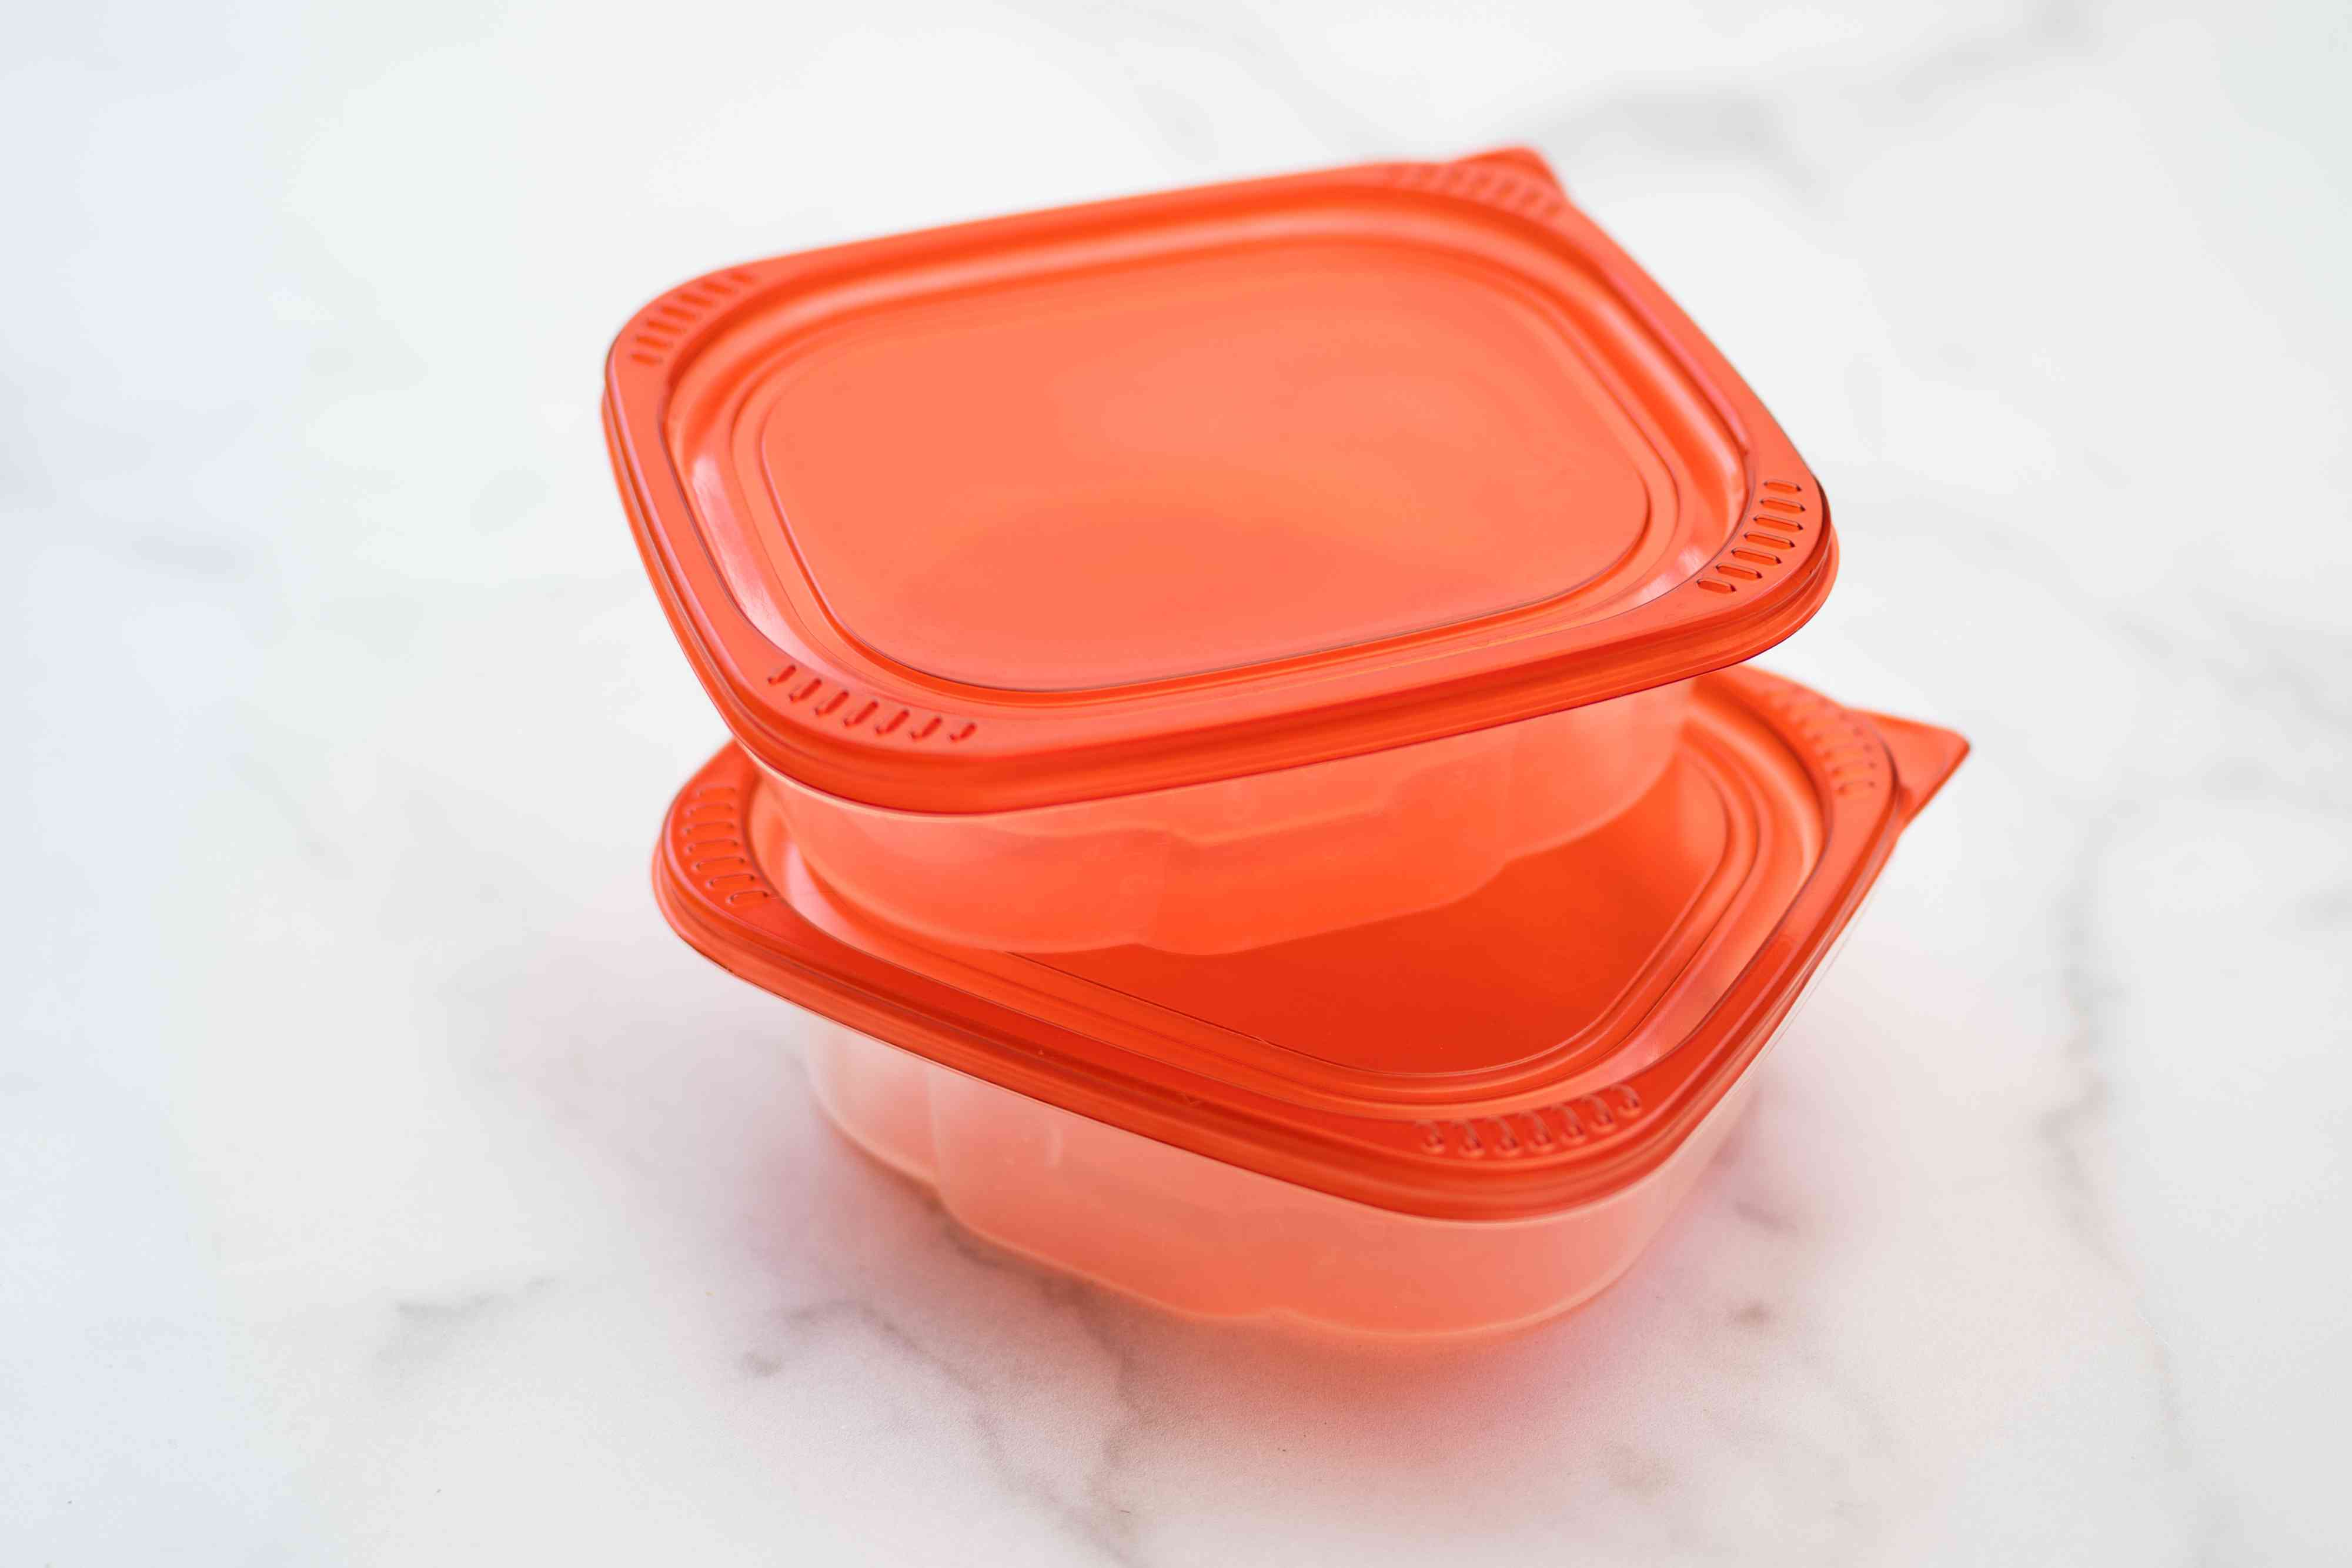 Thin plastic containers with red lids not placed in dishwasher